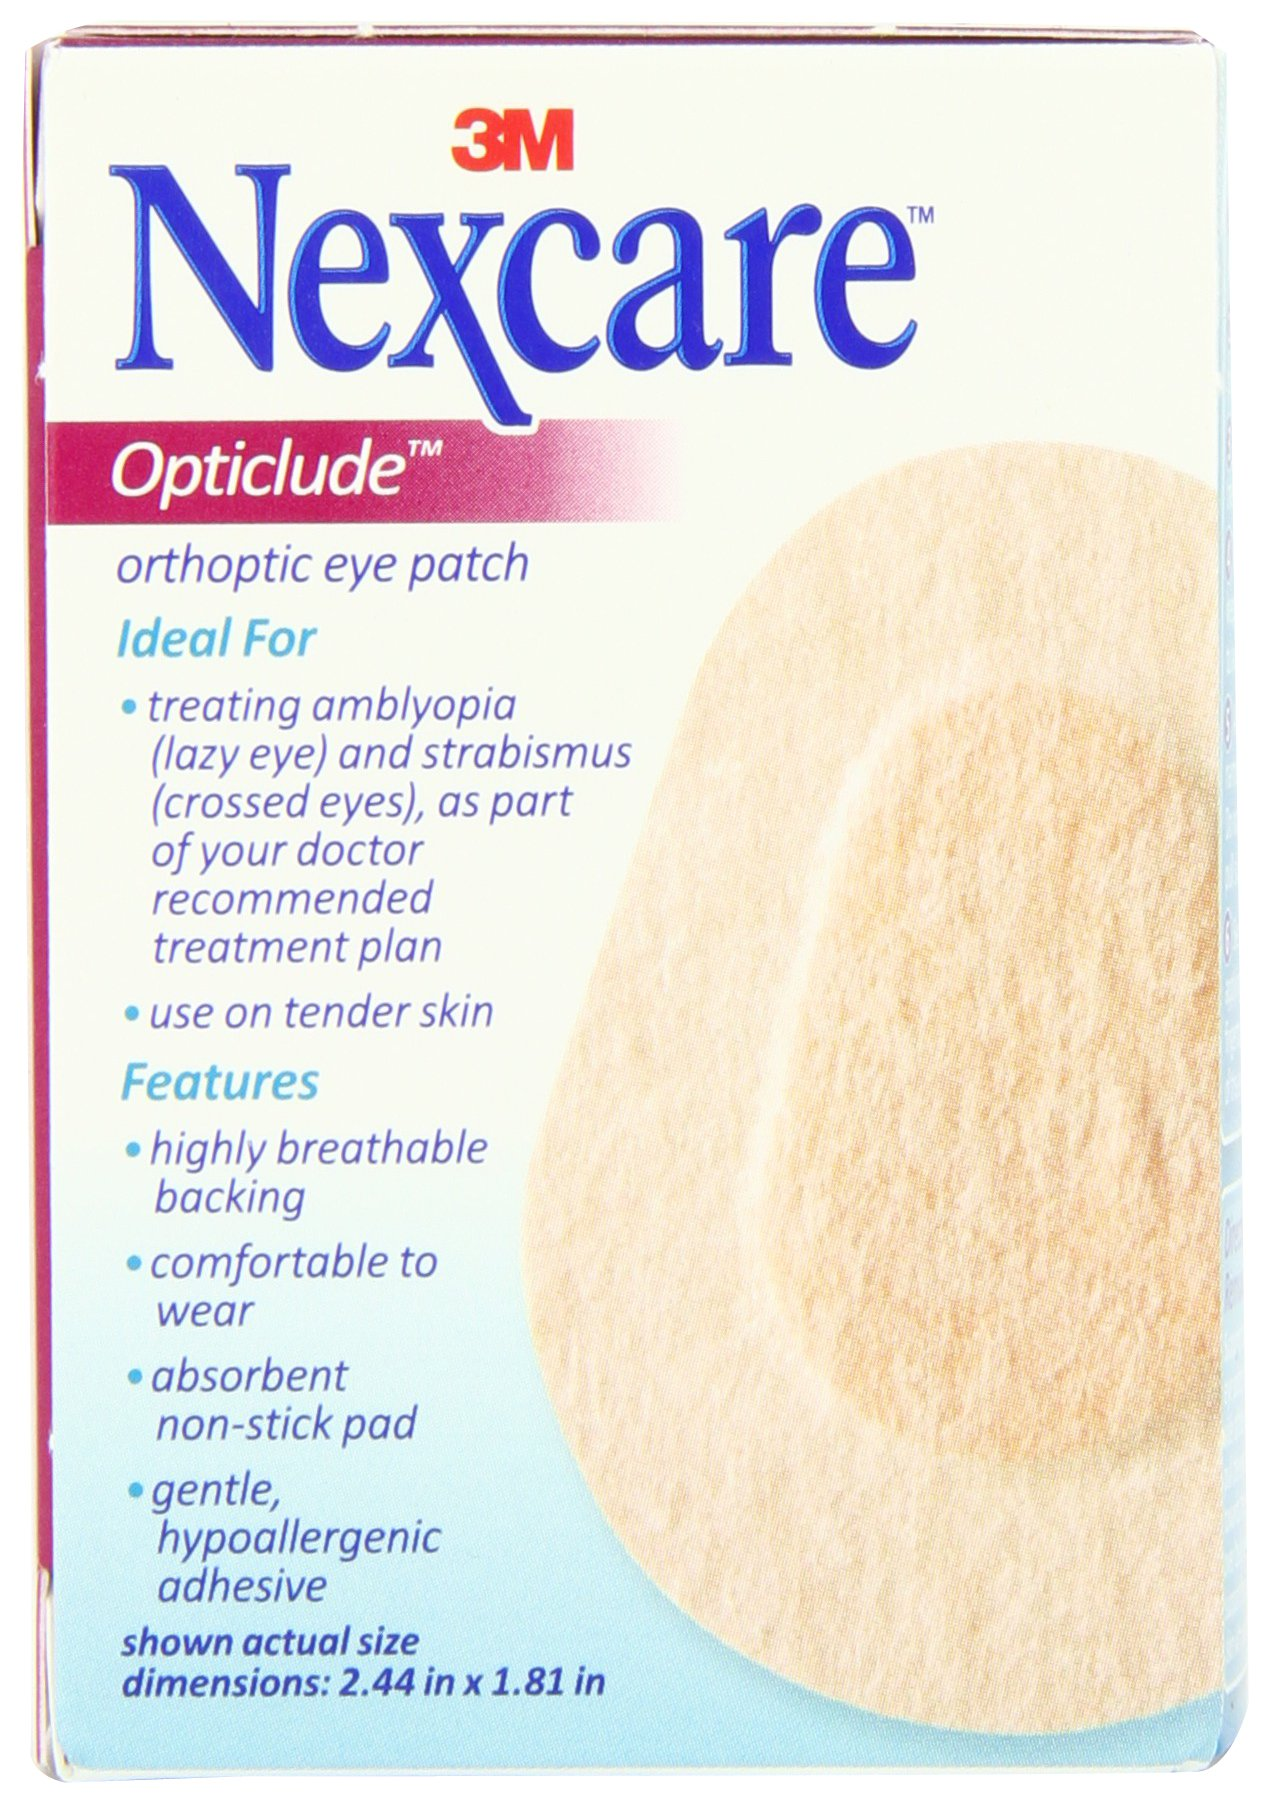 Nexcare Opticlude Orthoptic Eye Patches, Junior Size, 20-Count Boxes (Pack of 4) by Nexcare (Image #2)